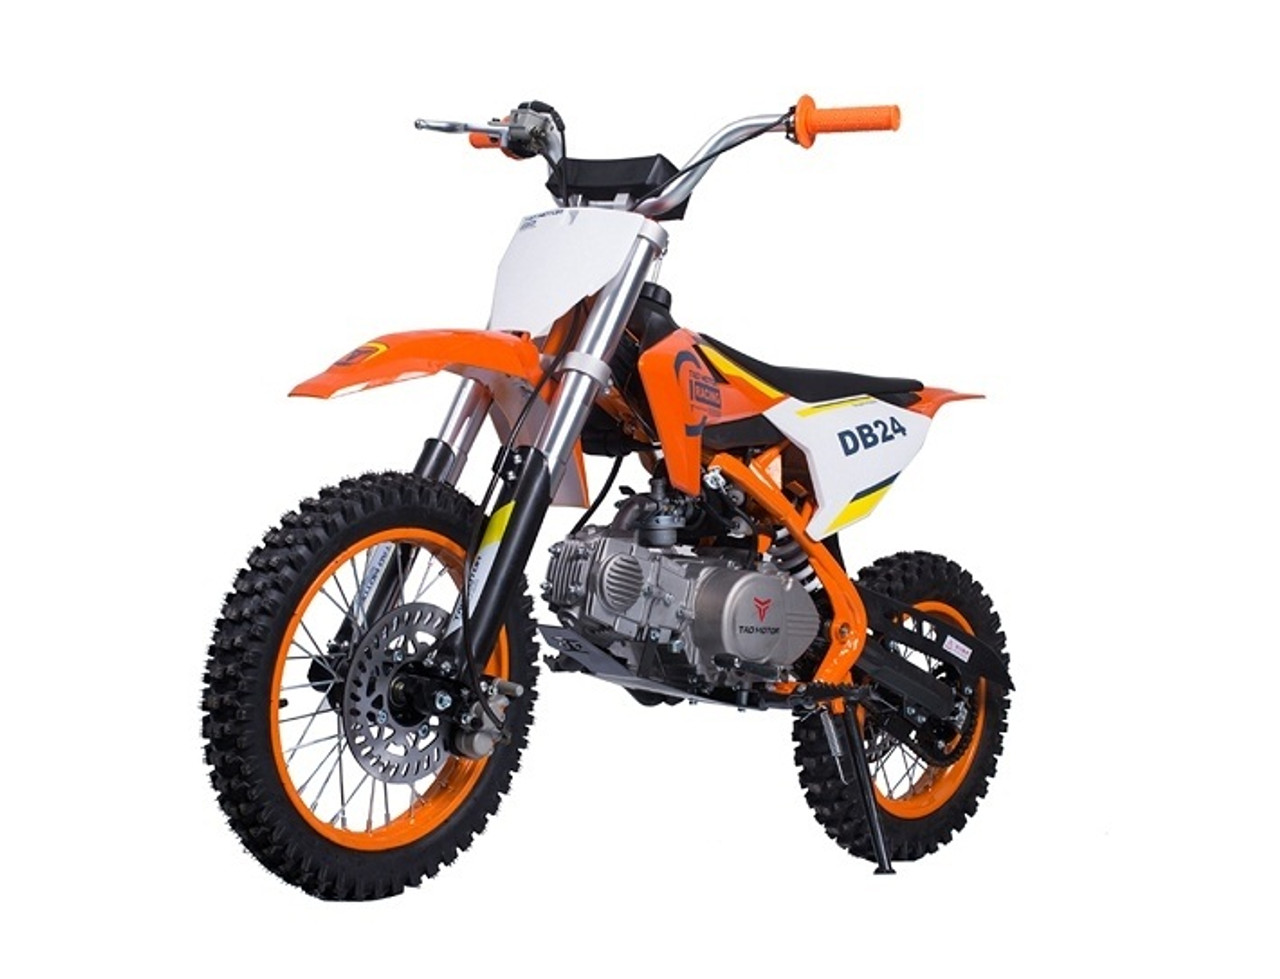 Taotao Db24 107Cc Dirt Bike,Air Cooled, 4-Stroke, Single-Cylinder - Fully Assembled And Tested